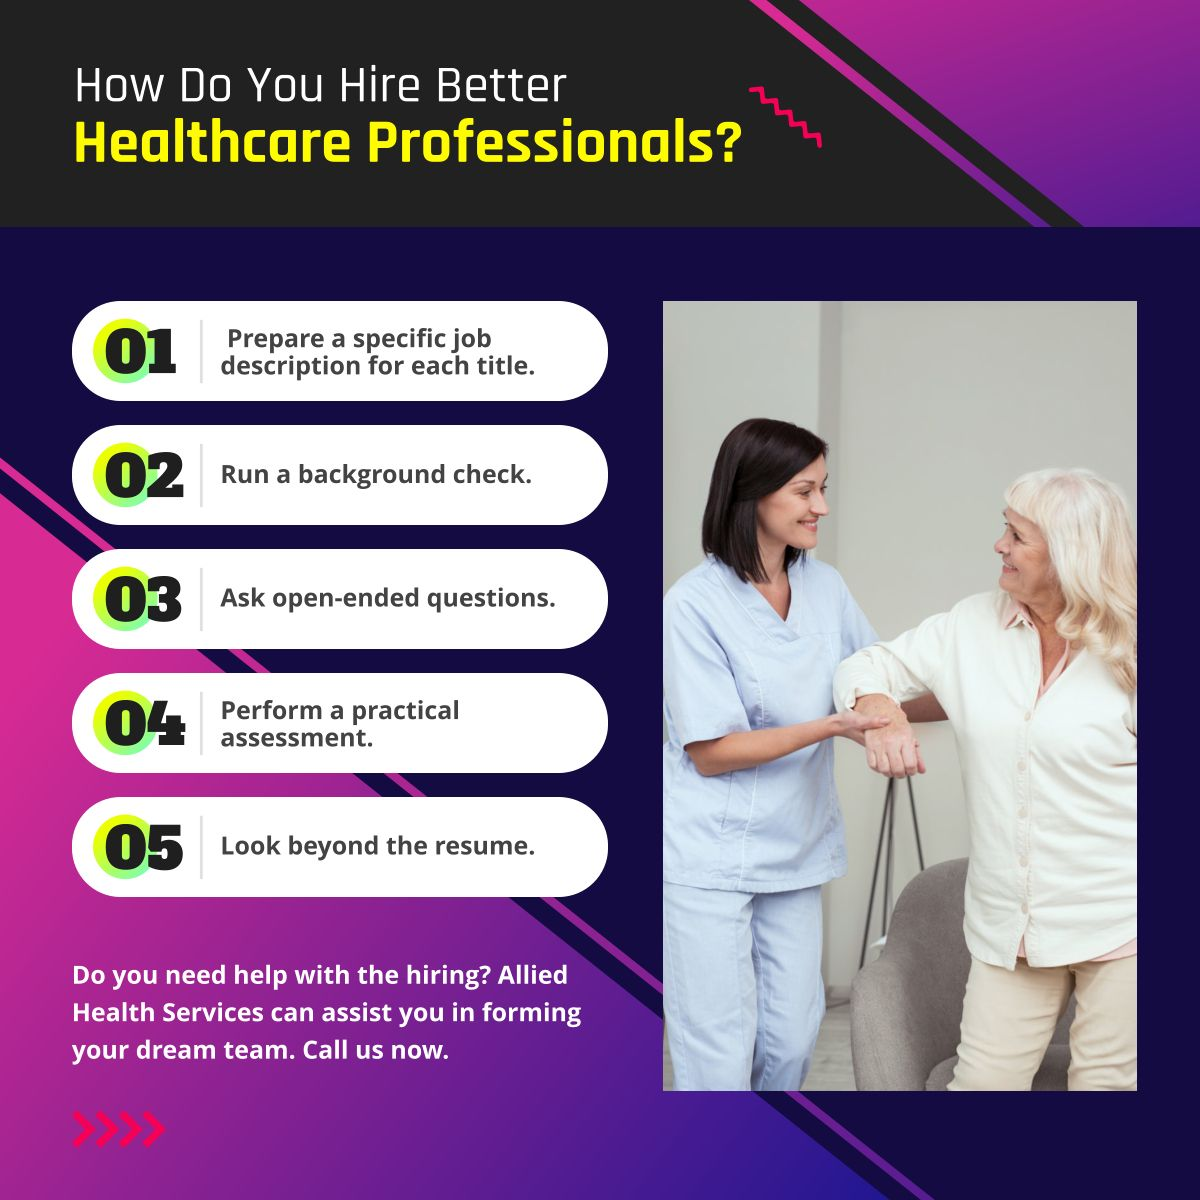 How Do You Hire Better Healthcare Professionals?